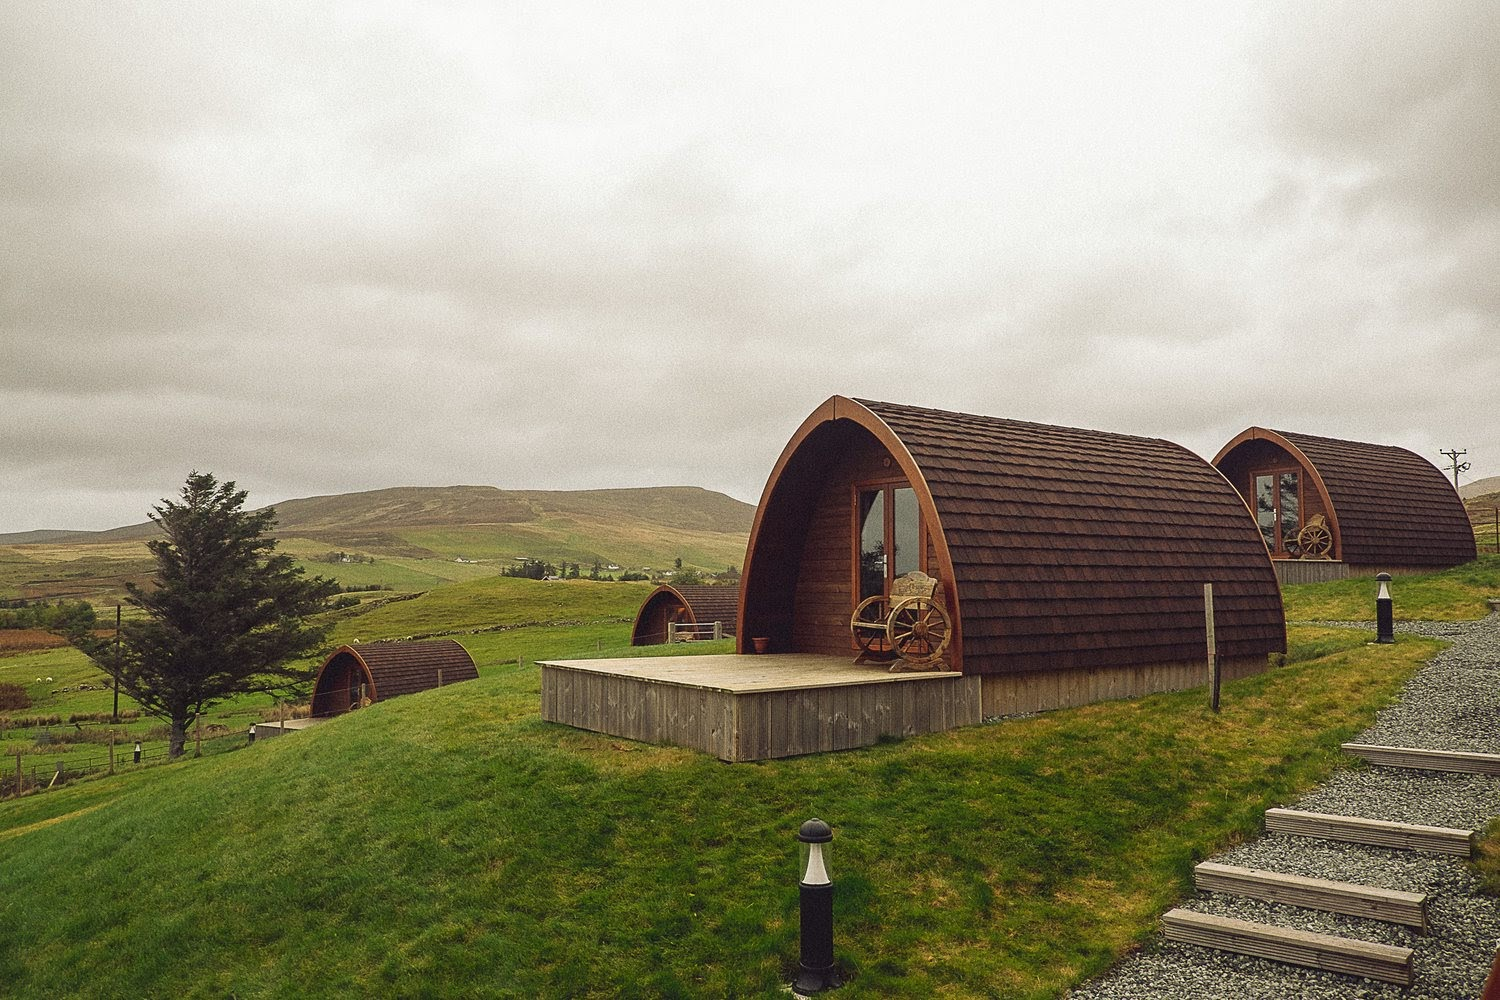 The Cowshed Boutique Bunkhouse Pods - Uig, Isle of Skye, ScotlandType: Tiny HomeBeds: 1 double, 1 sofa bed (sleeps 2-3)Cost: $